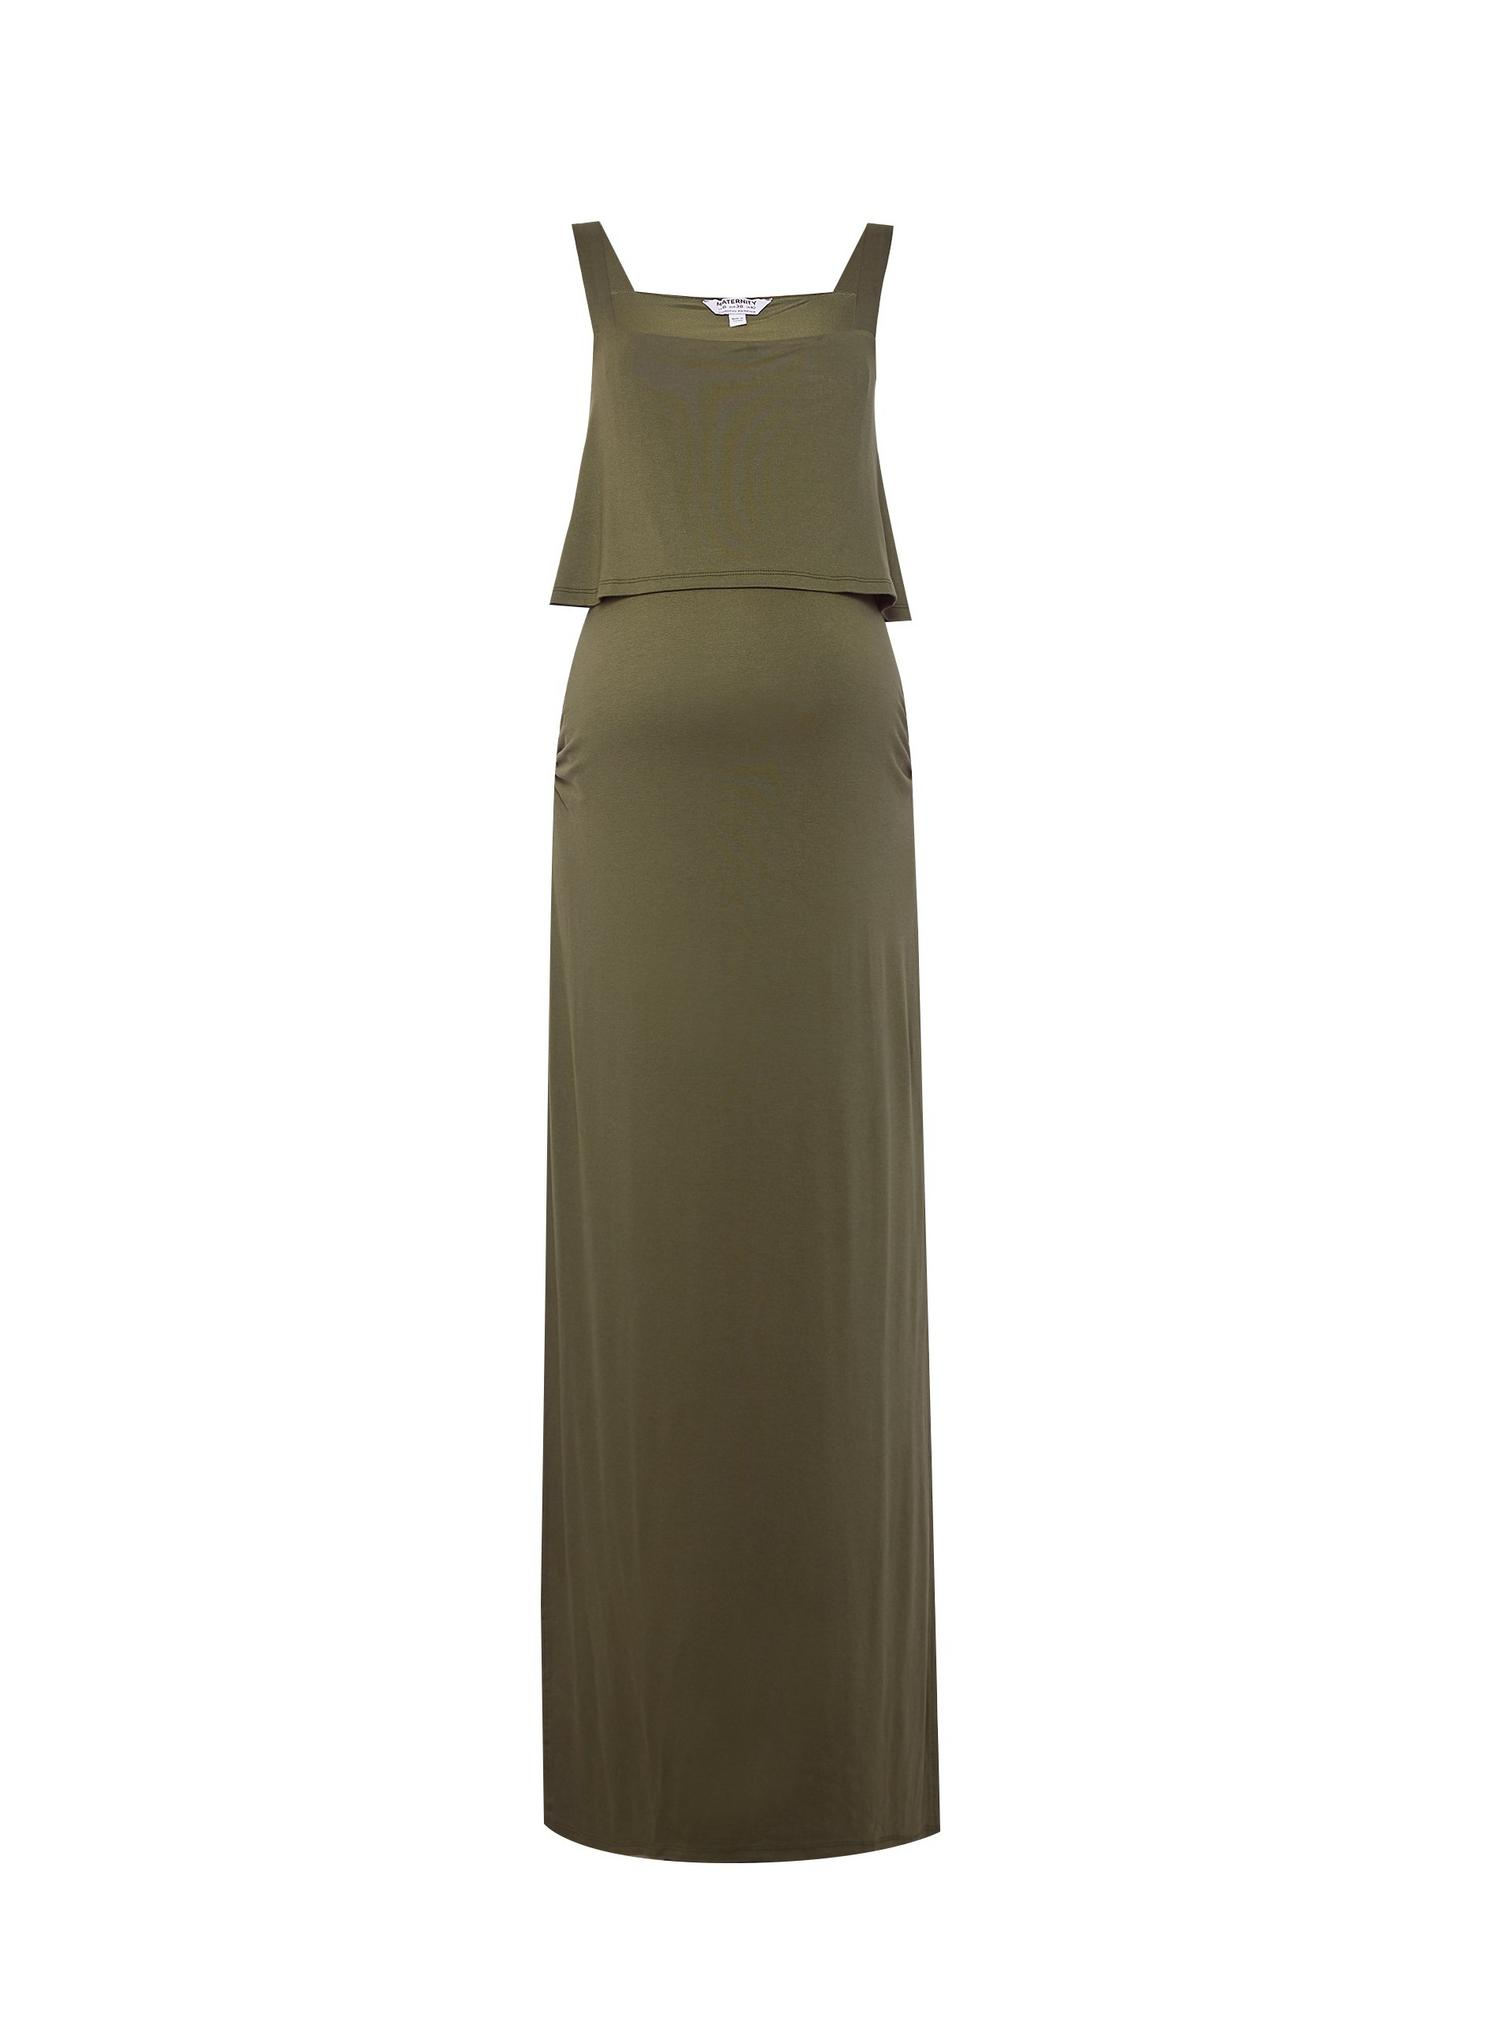 130 Maternity Khaki Camisole Maxi Dress image number 2